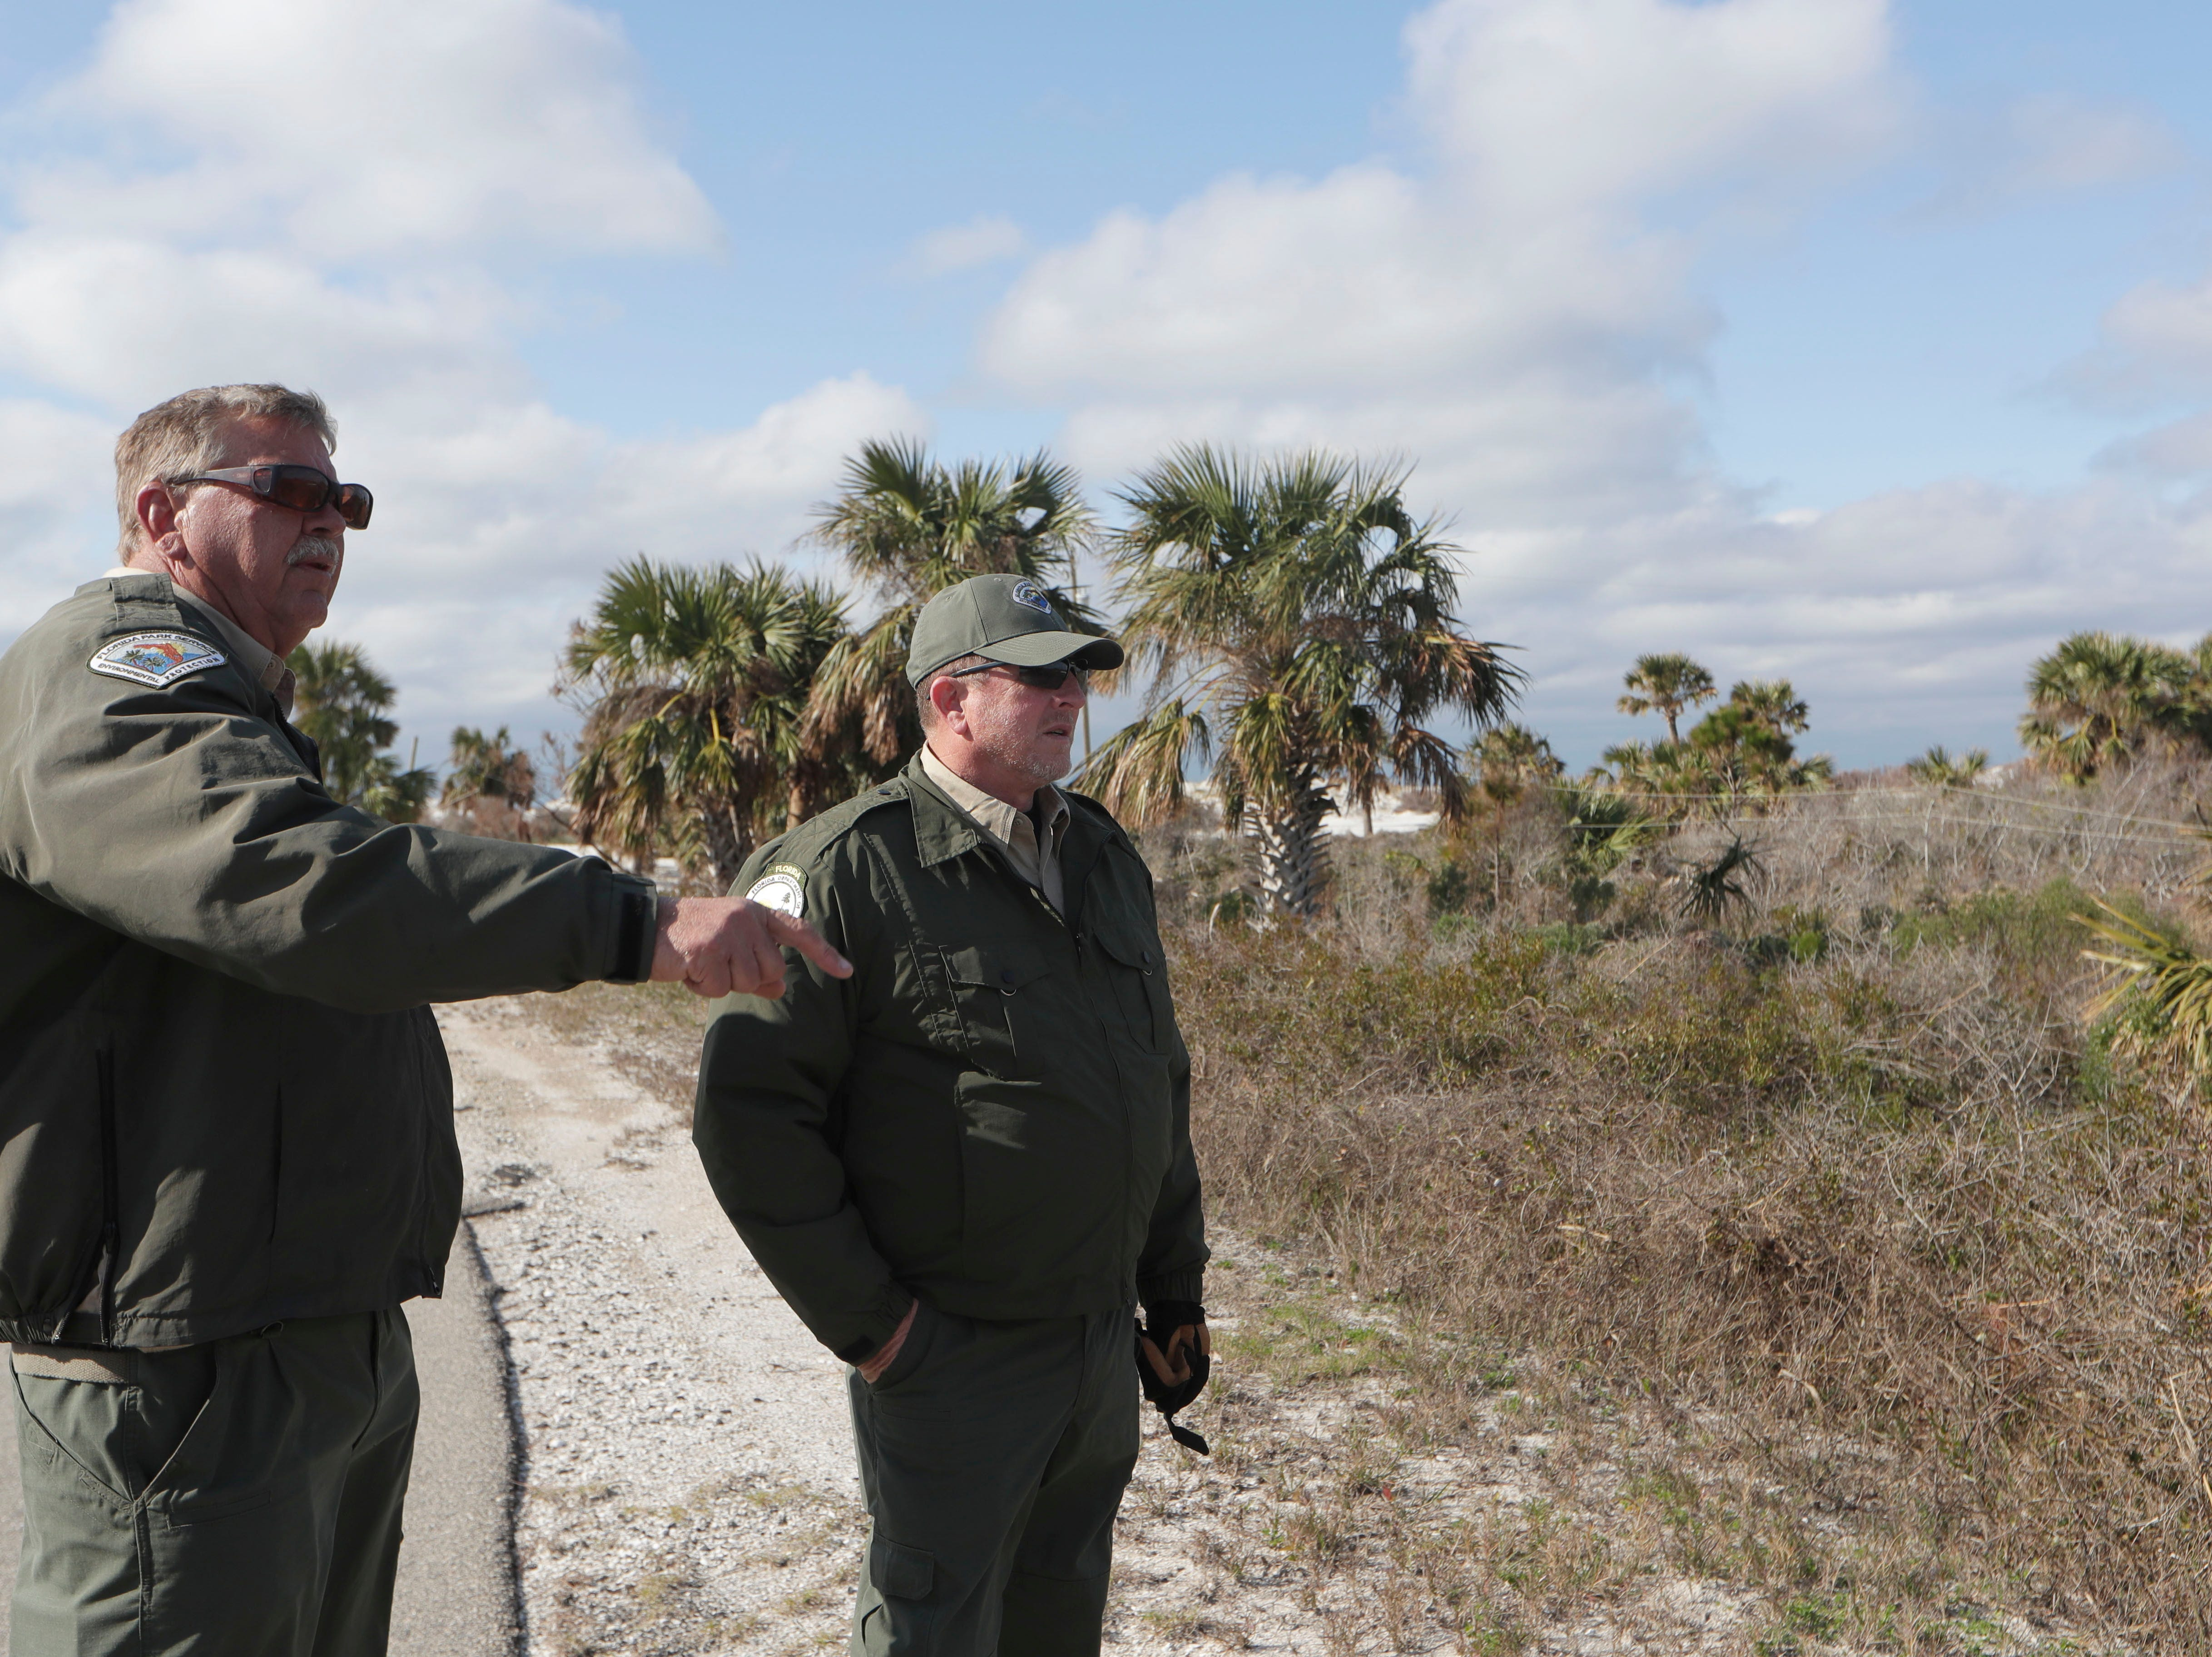 Mark Knapke, park manager with the Florida Department of Environmental Protection, left, and Chuck Hatcher, assistant director of field operations for the Florida Department of Environmental Protection, discuss what a roadway in St. Joseph Peninsula State Park looked like and what needs to be done to fix it, Monday, Jan. 14, 2019. Hurricane Michael left the state park in a total disarray three months prior.